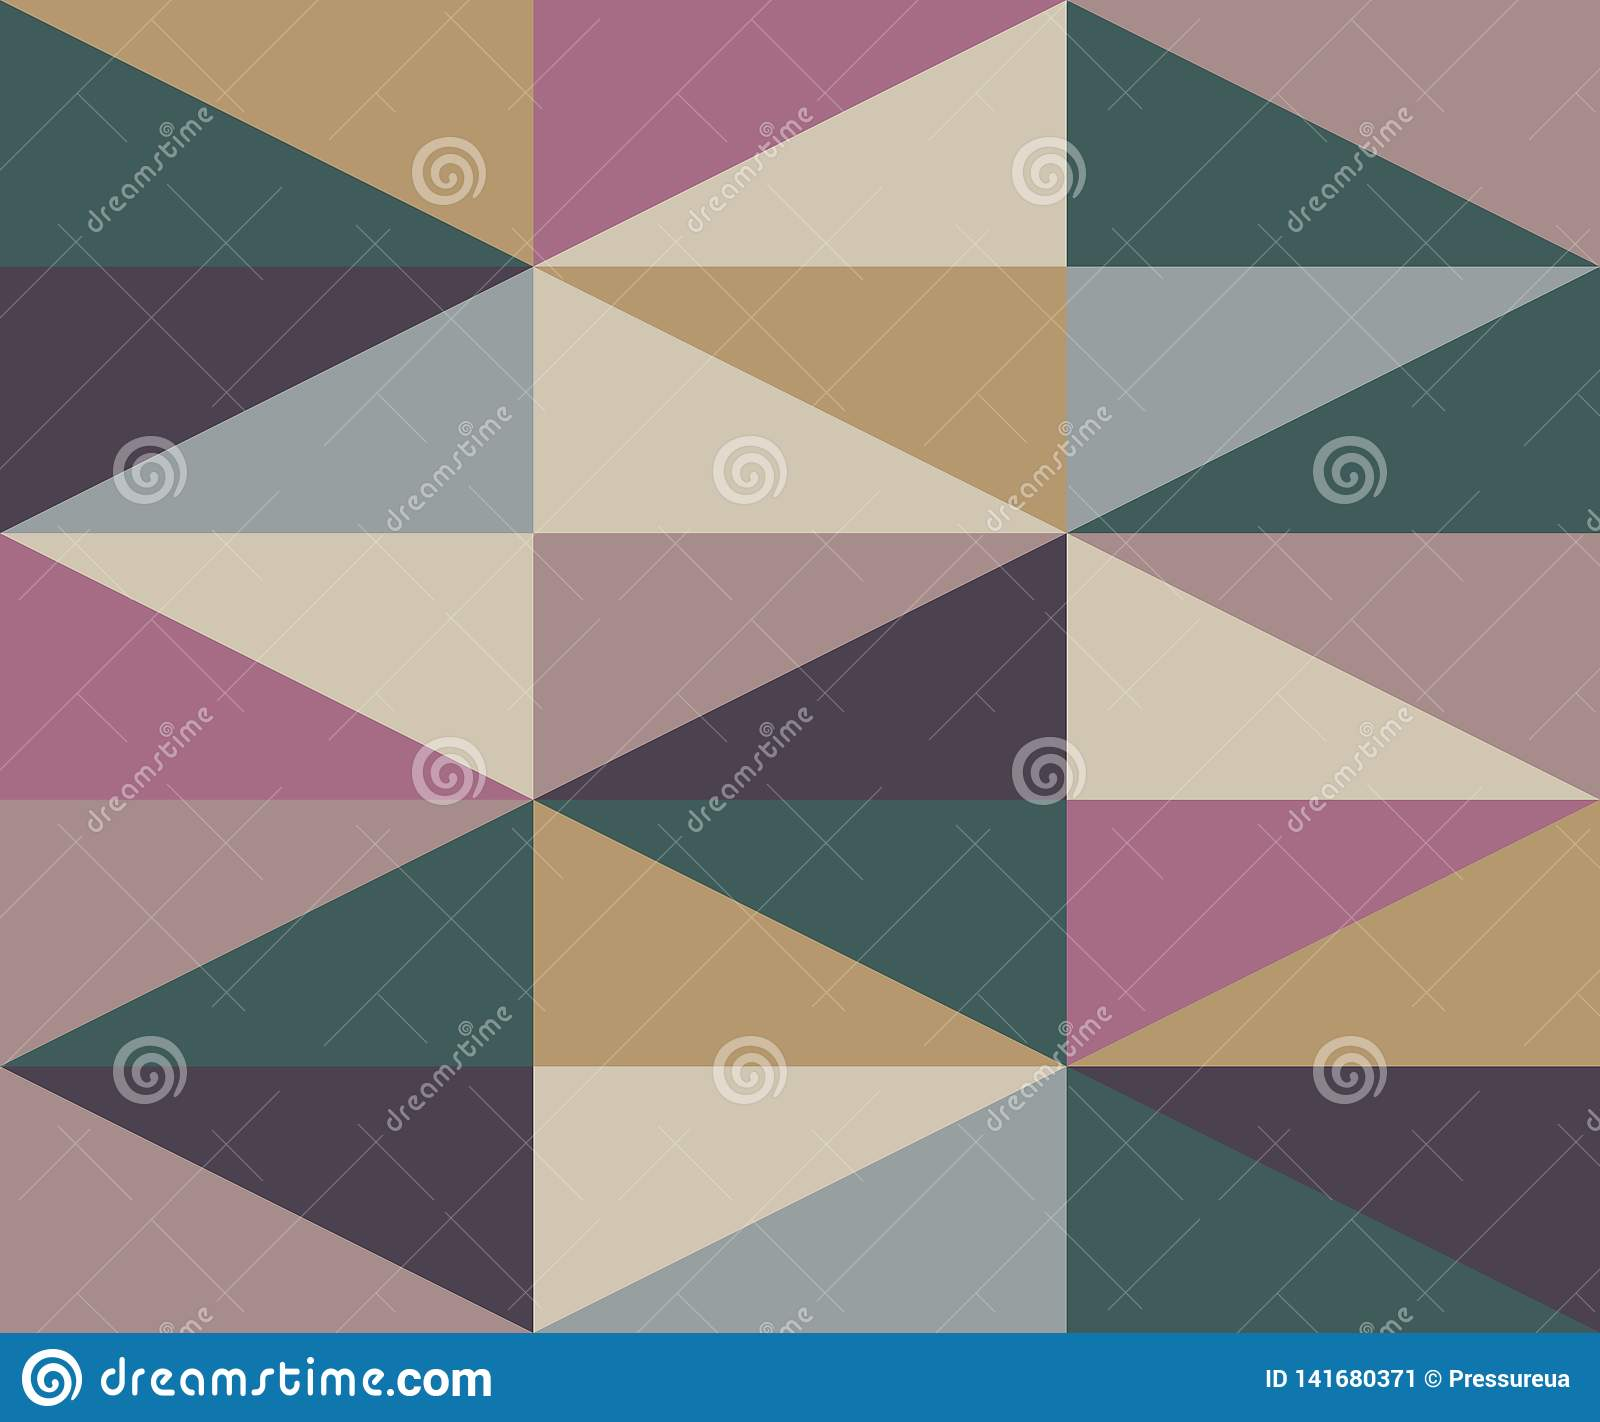 Abstract vector geometric pattern of warm colors with simple geometry shape and minimalist figures scandinavian style print design graphics for poster